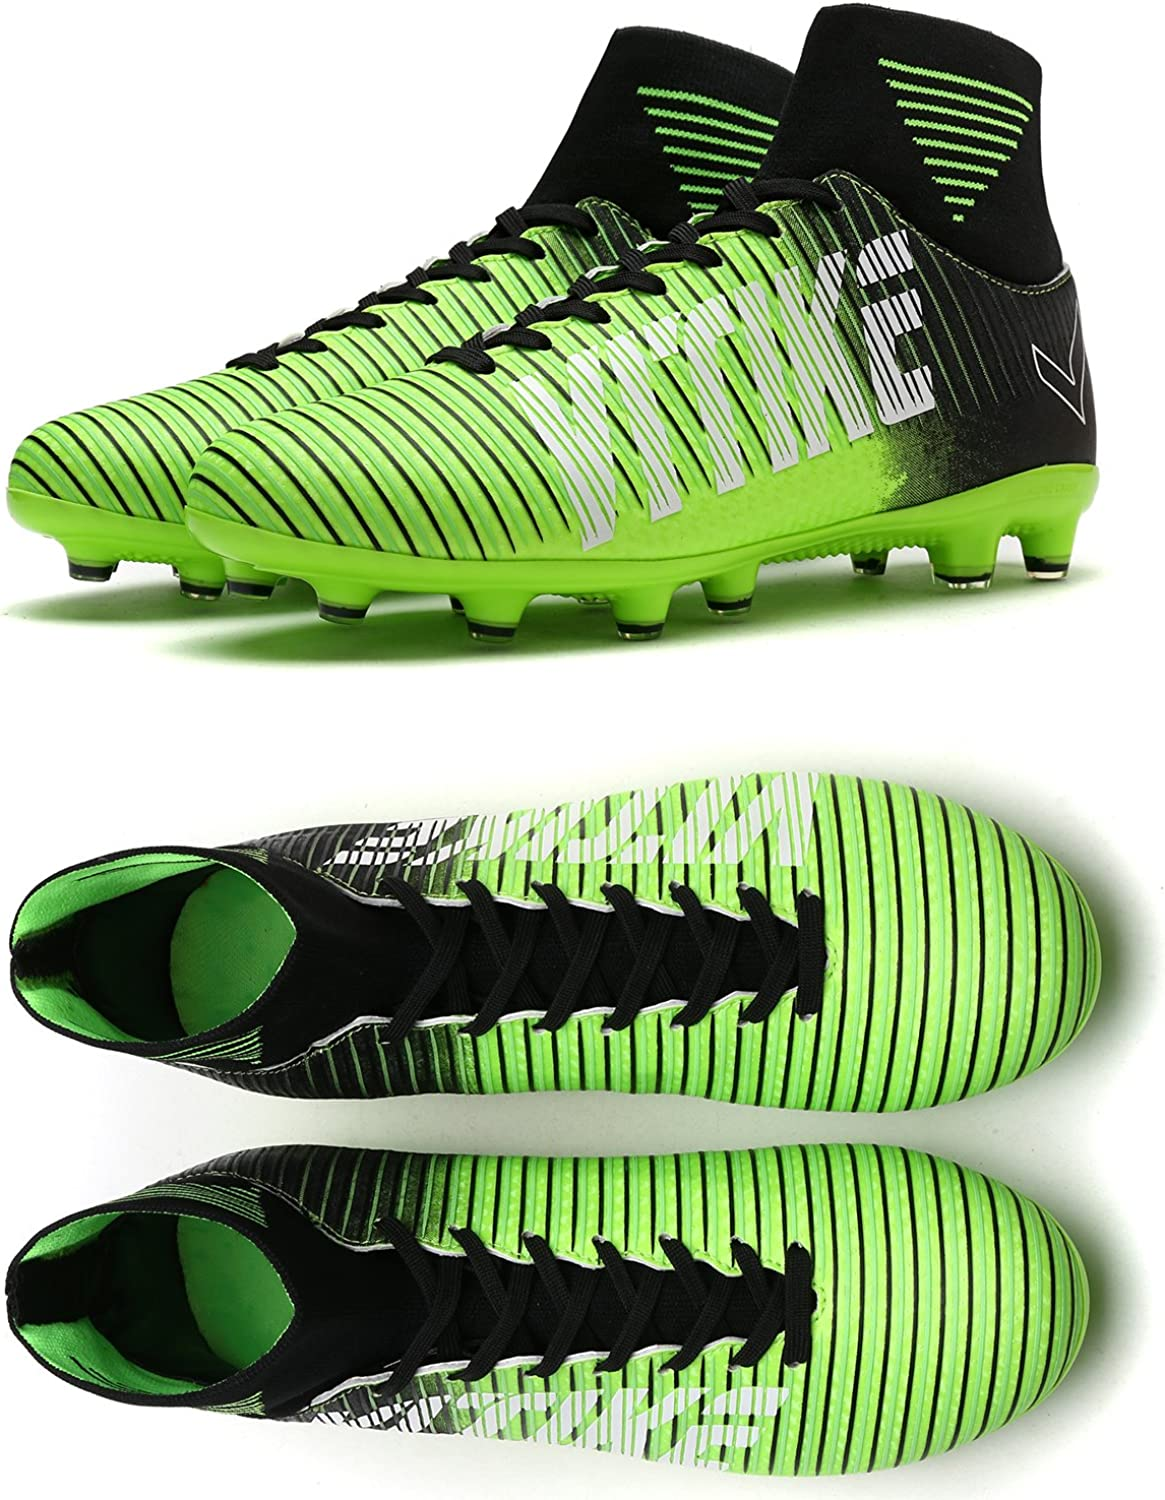 WETIKE Kids Soccer Cleats Boys Youth Cleats Football Boots High-top Cleats for Soccer